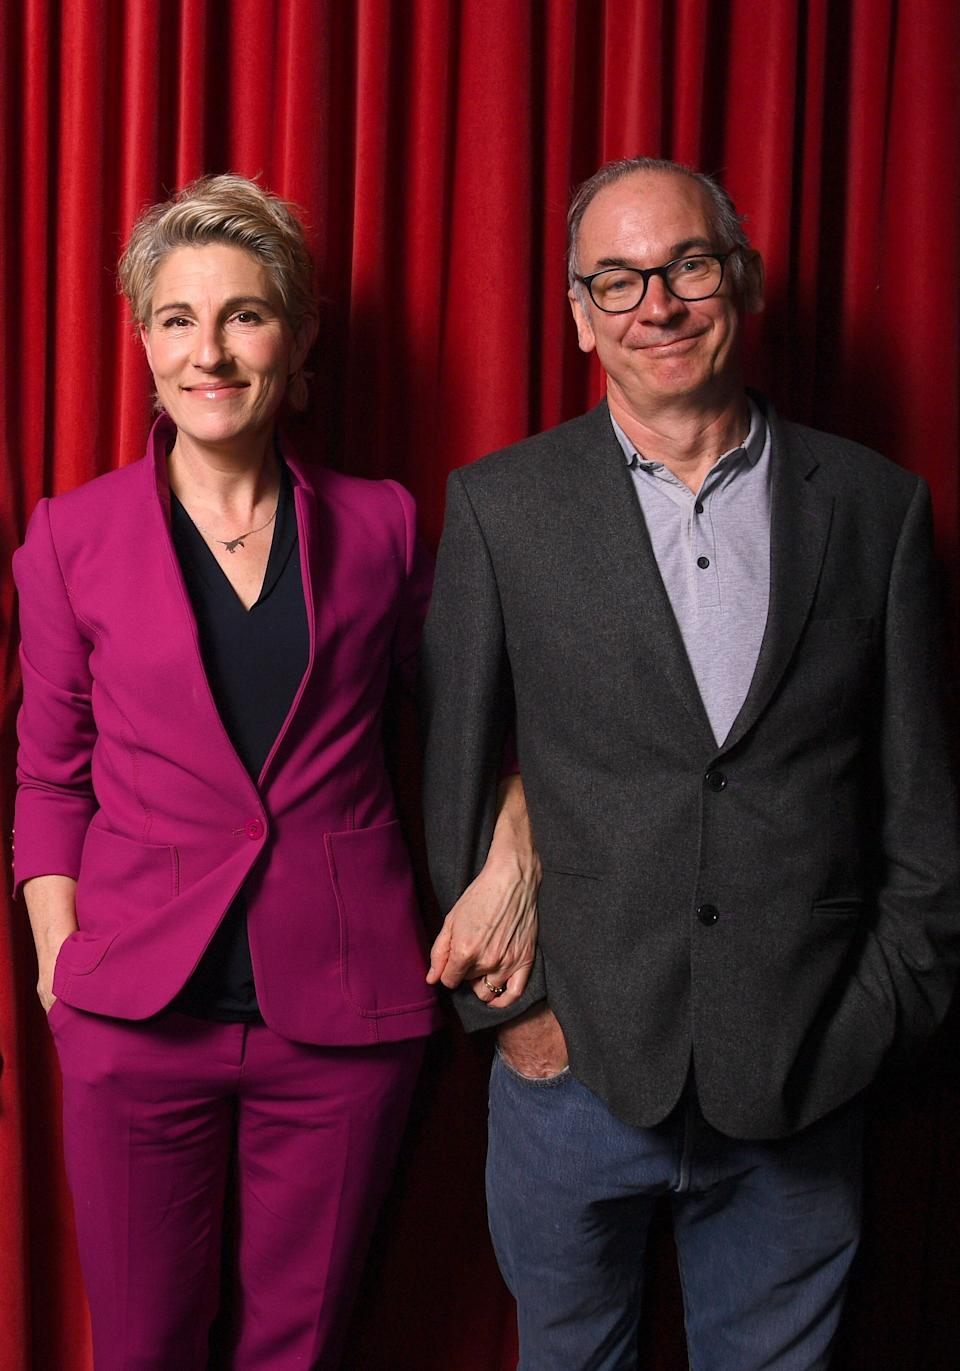 Tamsin Greig and Paul Ritter (Photo: Dave J Hogan via Getty Images)